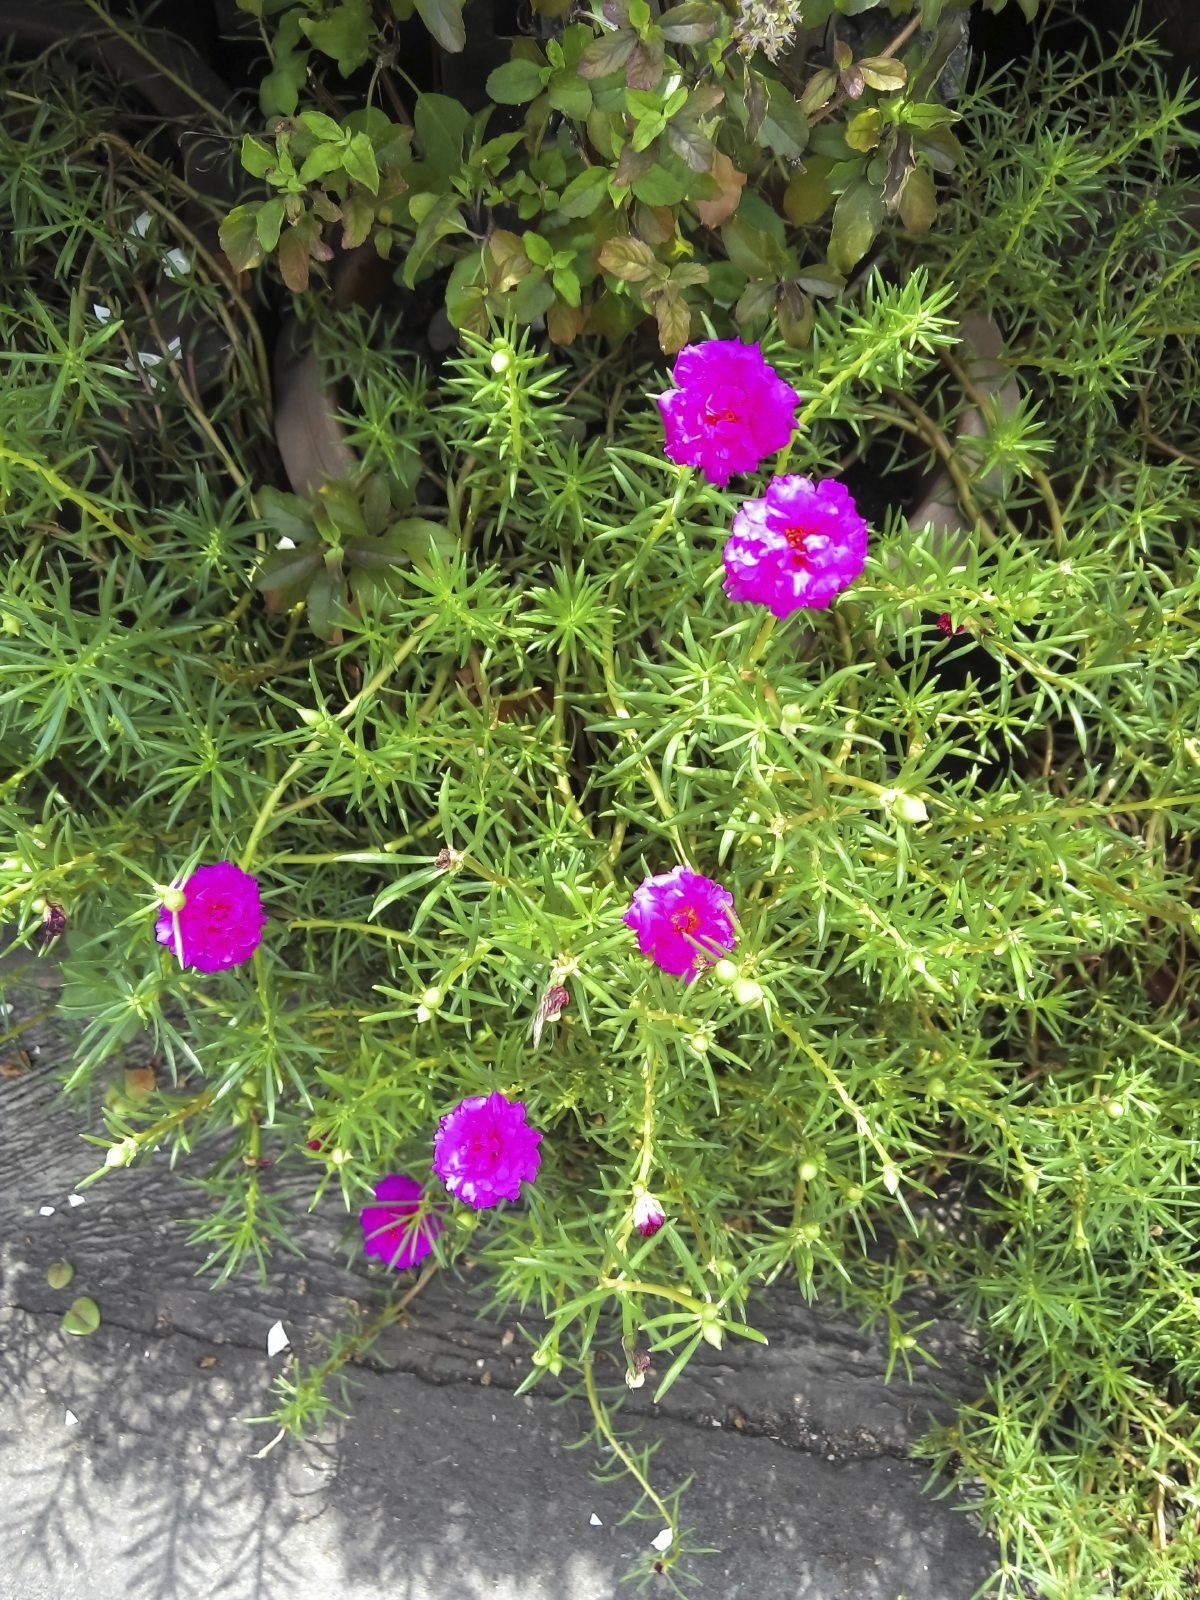 Drought tolerant annuals for shade or sun how to grow drought drought tolerant annuals for shade or sun how to grow drought tolerant annuals izmirmasajfo